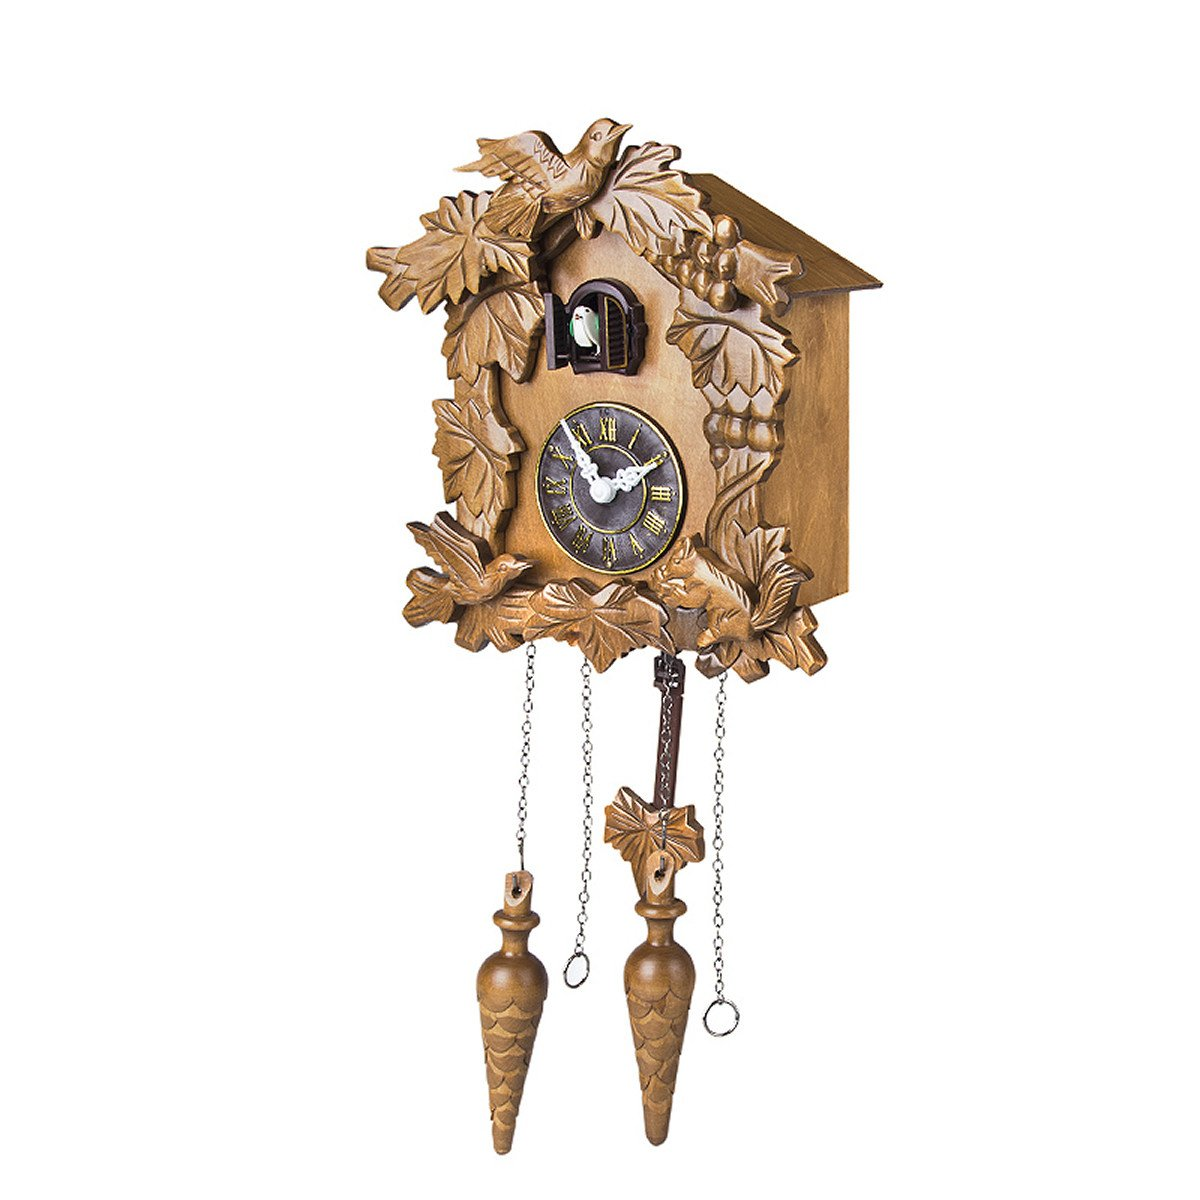 Cuckoo clock photos images How to make a cuckoo clock